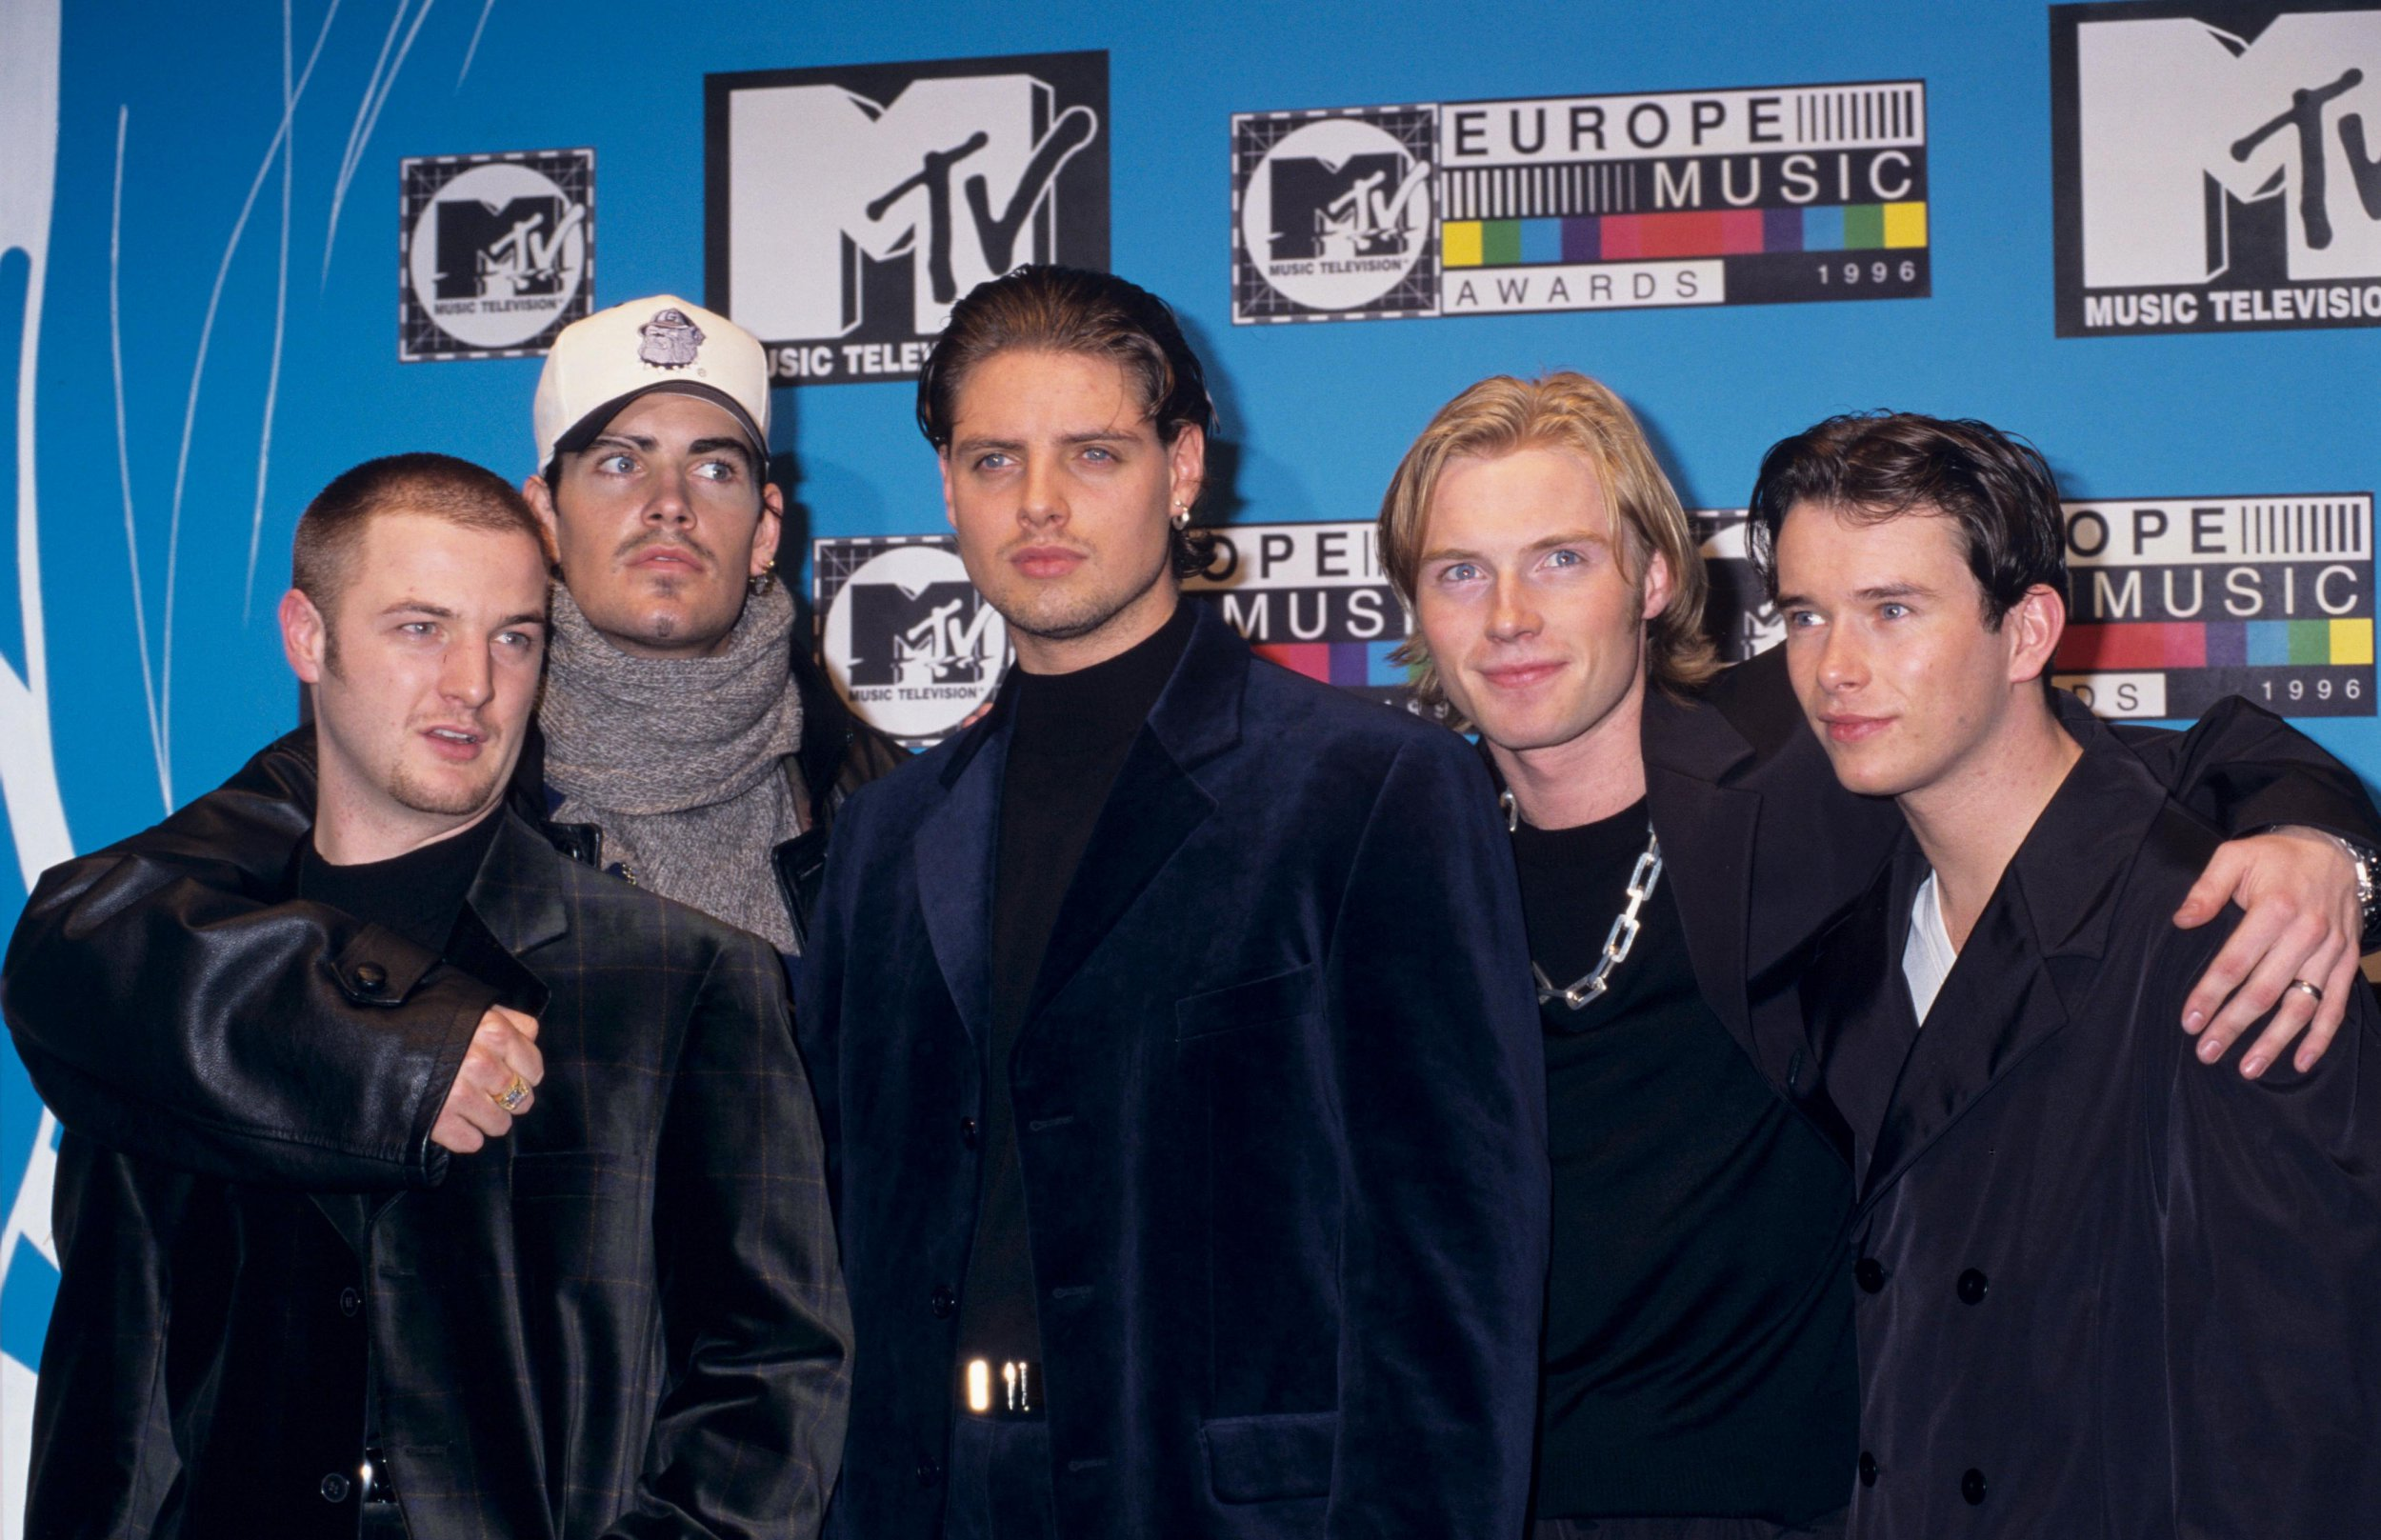 Boyzone confirm they will split after next album dedicated to Stephen Gately